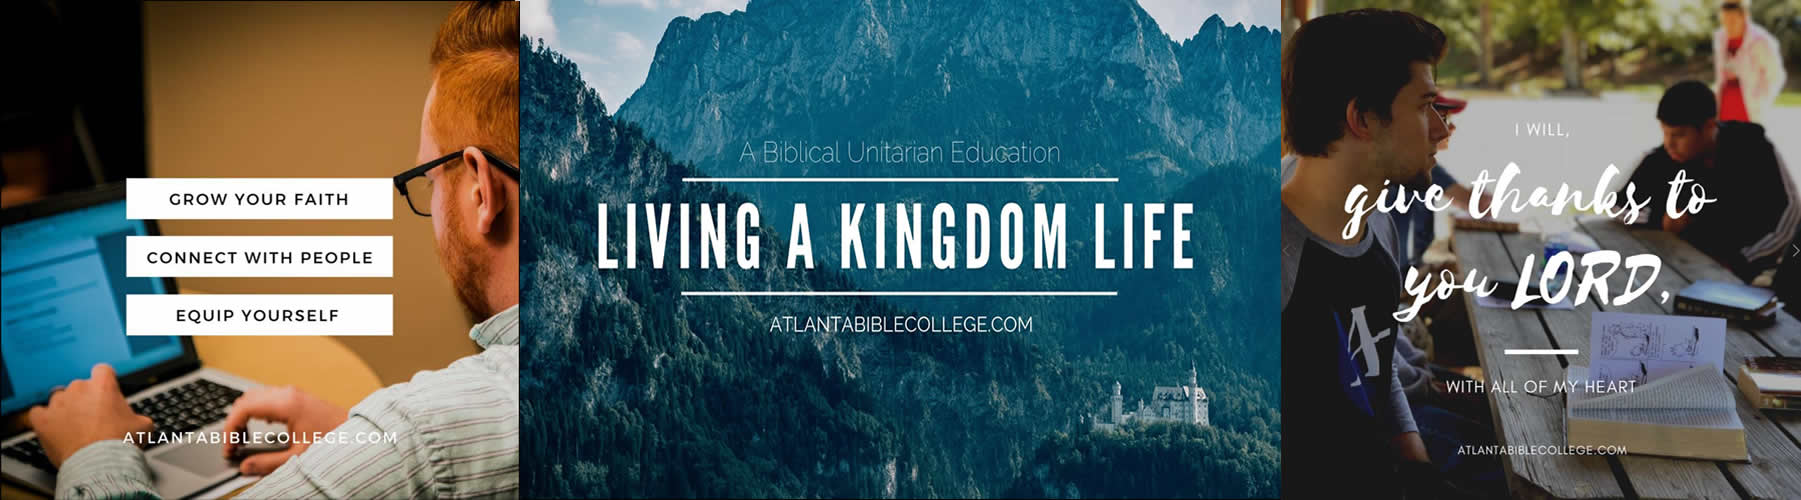 Atlanta Bible College